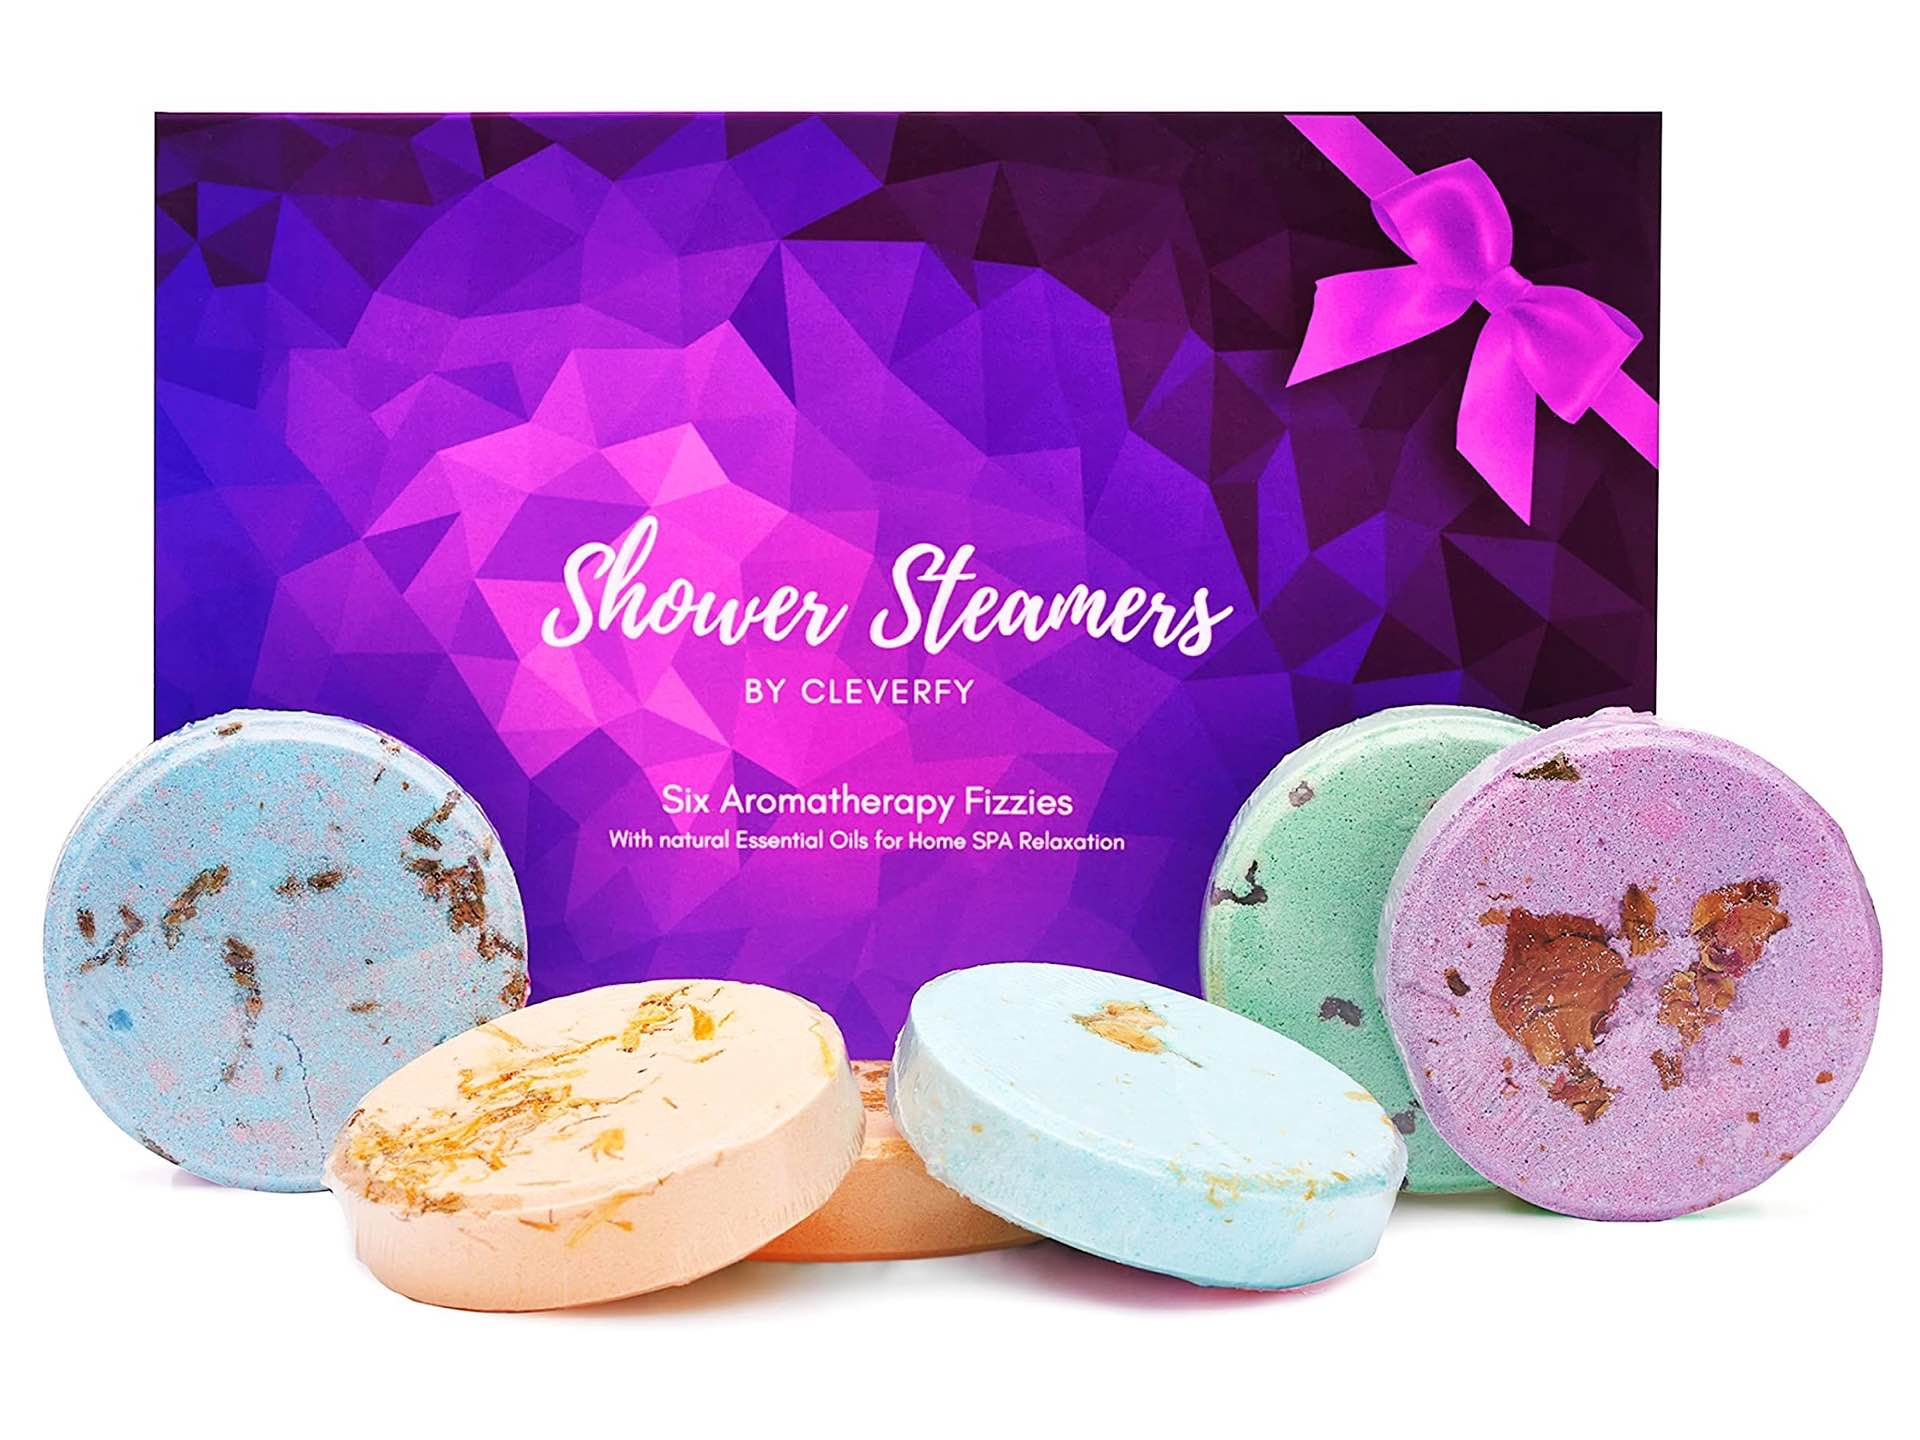 cleverfy-aromatherapy-shower-steamers